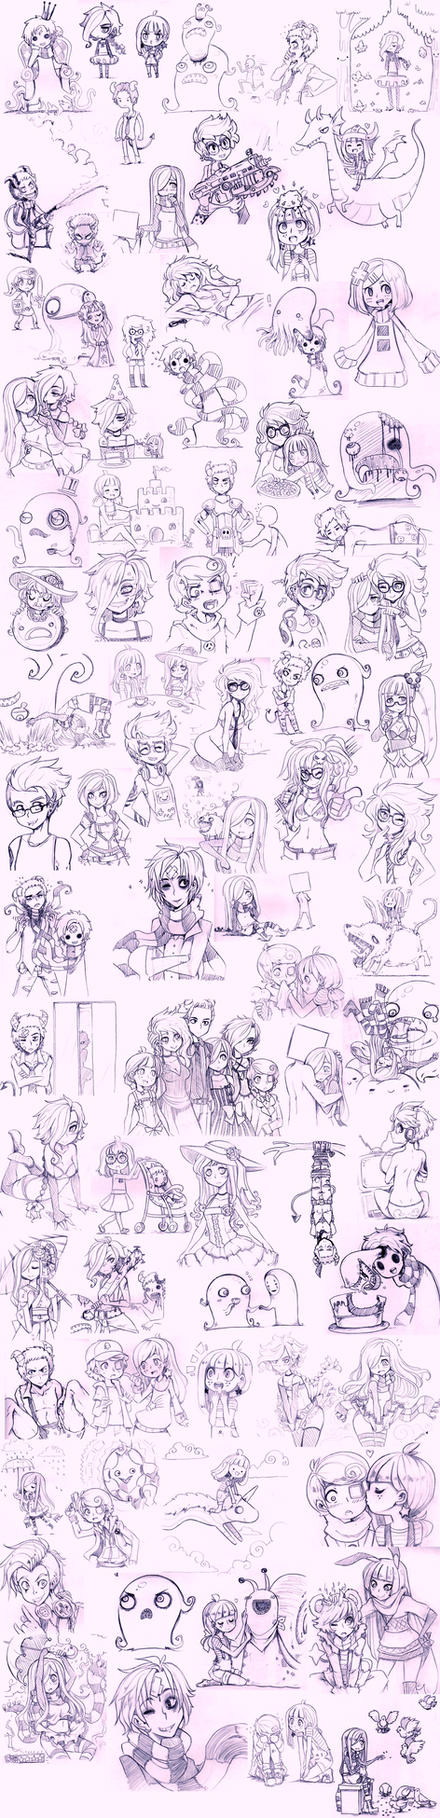 Super OC sketch dump 2 by Parororo